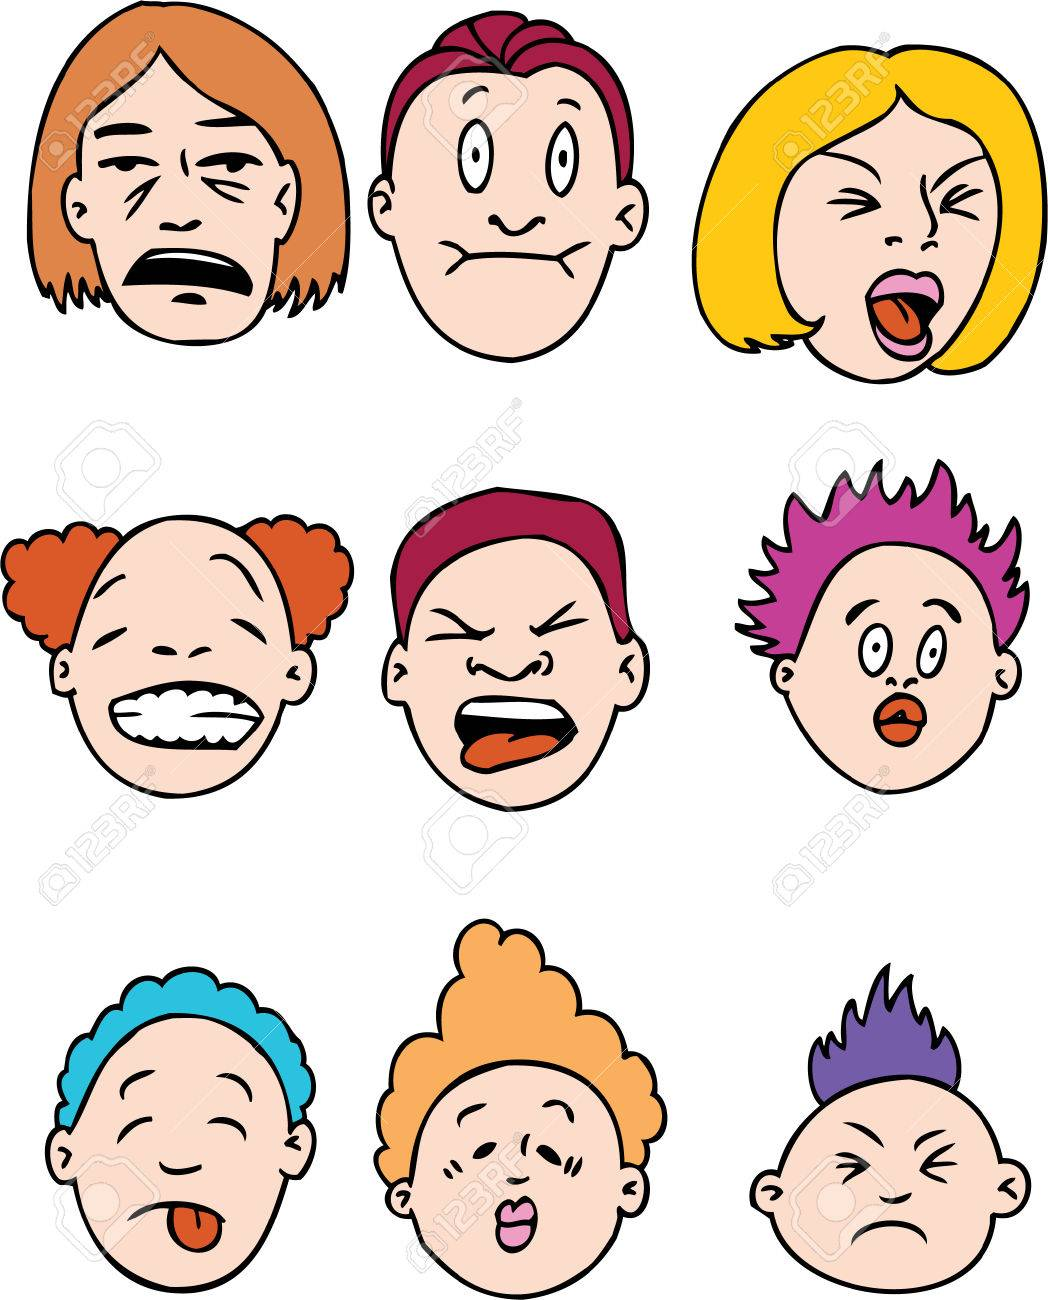 Grimace face clip art stock photo woman pulls a face in upset - Sour Face Sour People Isolated On A White Background